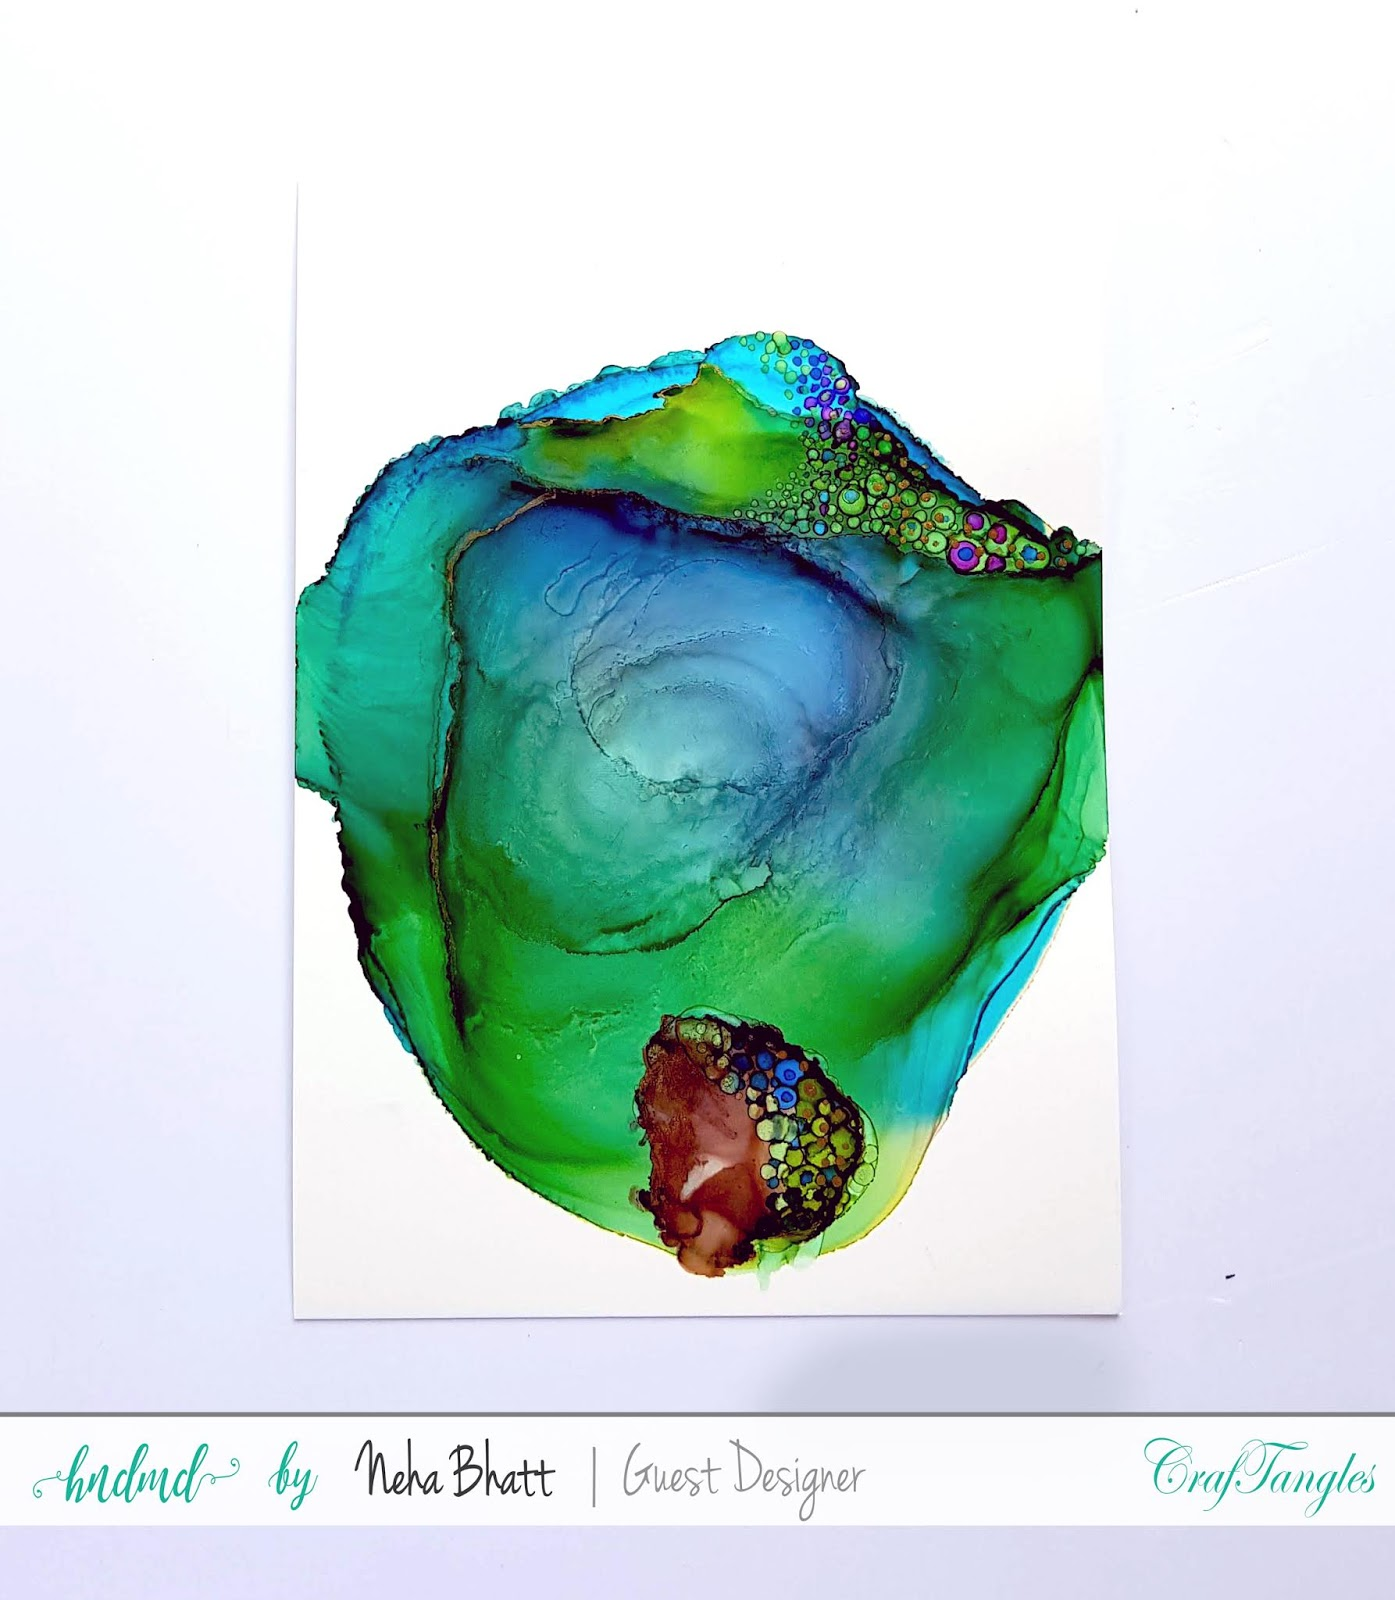 Some experiments with CrafTangles alcohol ink papers by Neha Bhatt [Periwinkle Creations] 8